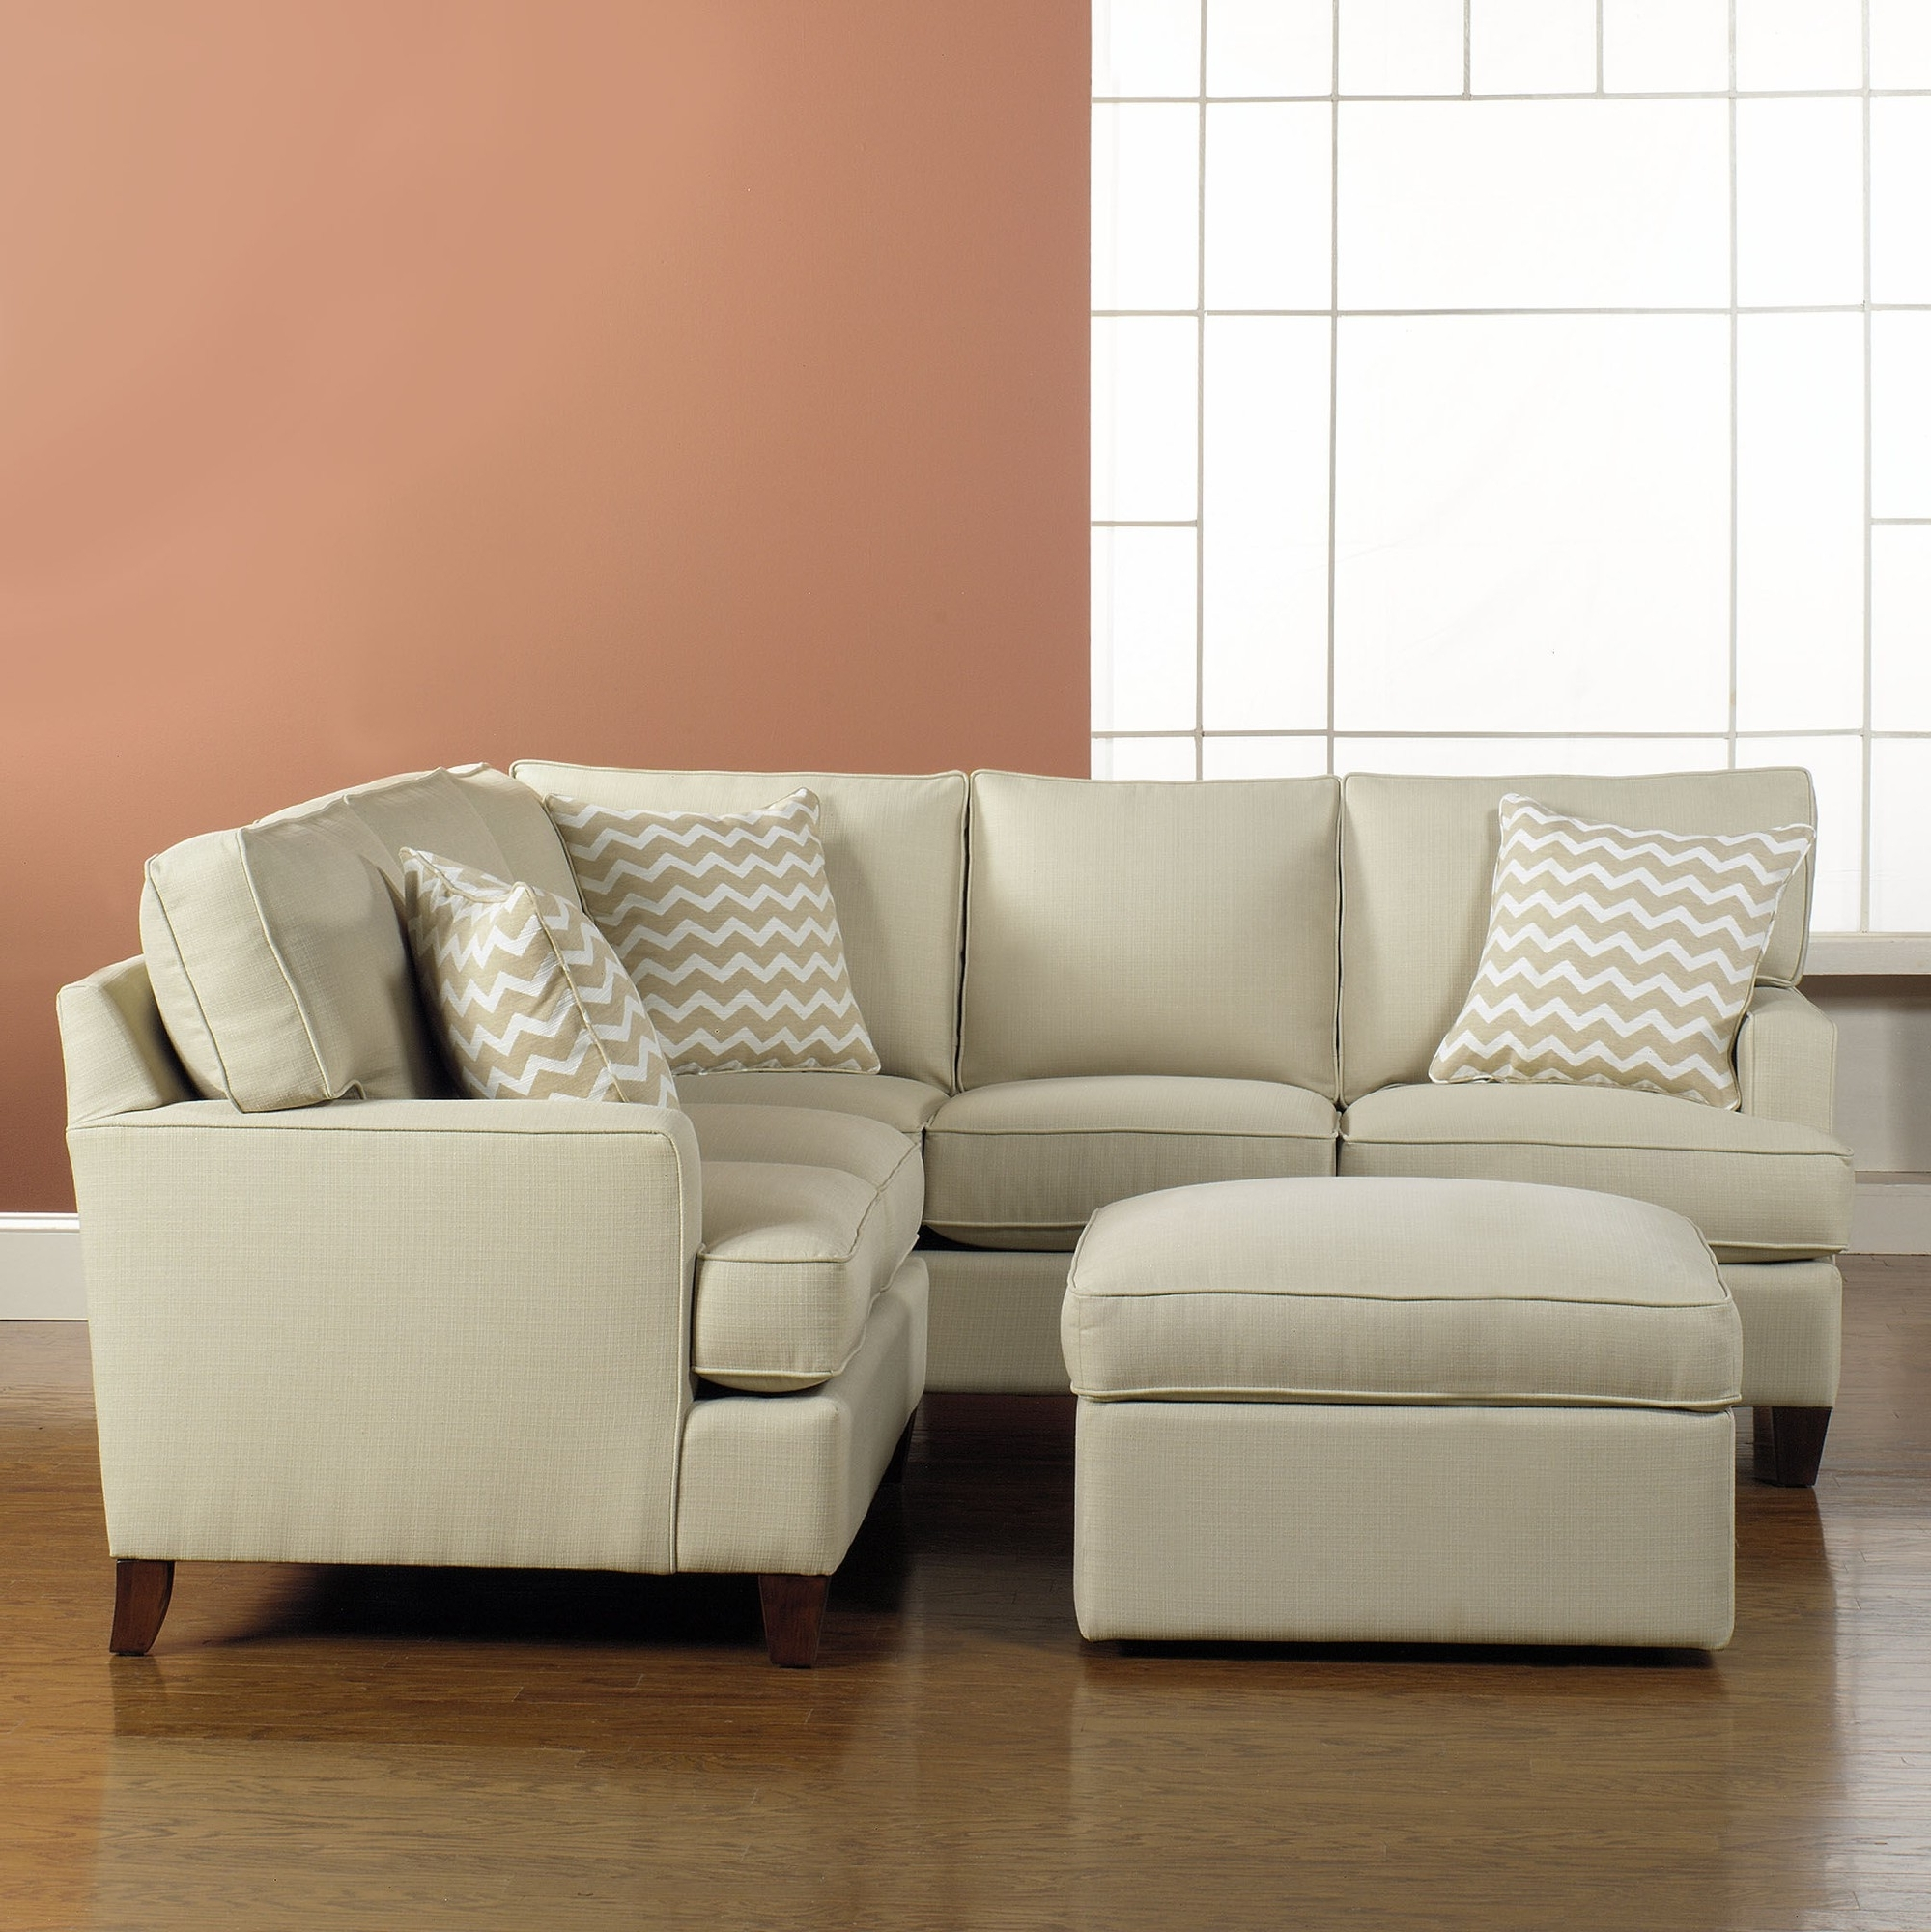 Well Known Sectional Sofas For Small Places With Awesome Small Sectional Sofa For Small Spaces – Buildsimplehome (View 15 of 15)